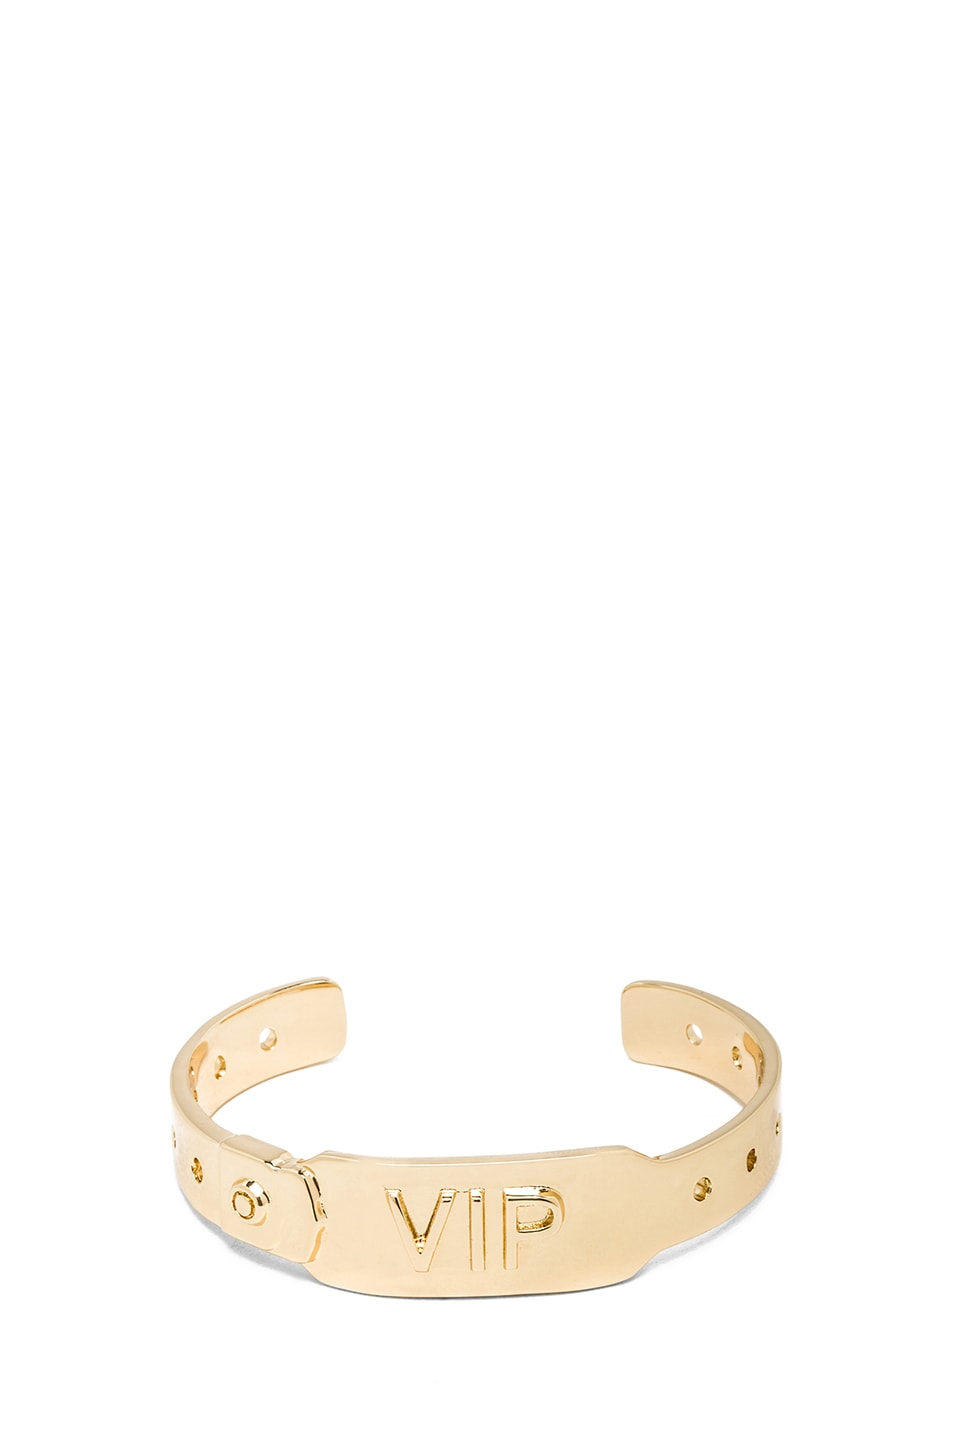 Image 1 of Jennifer Fisher VIP Cuff in Brass